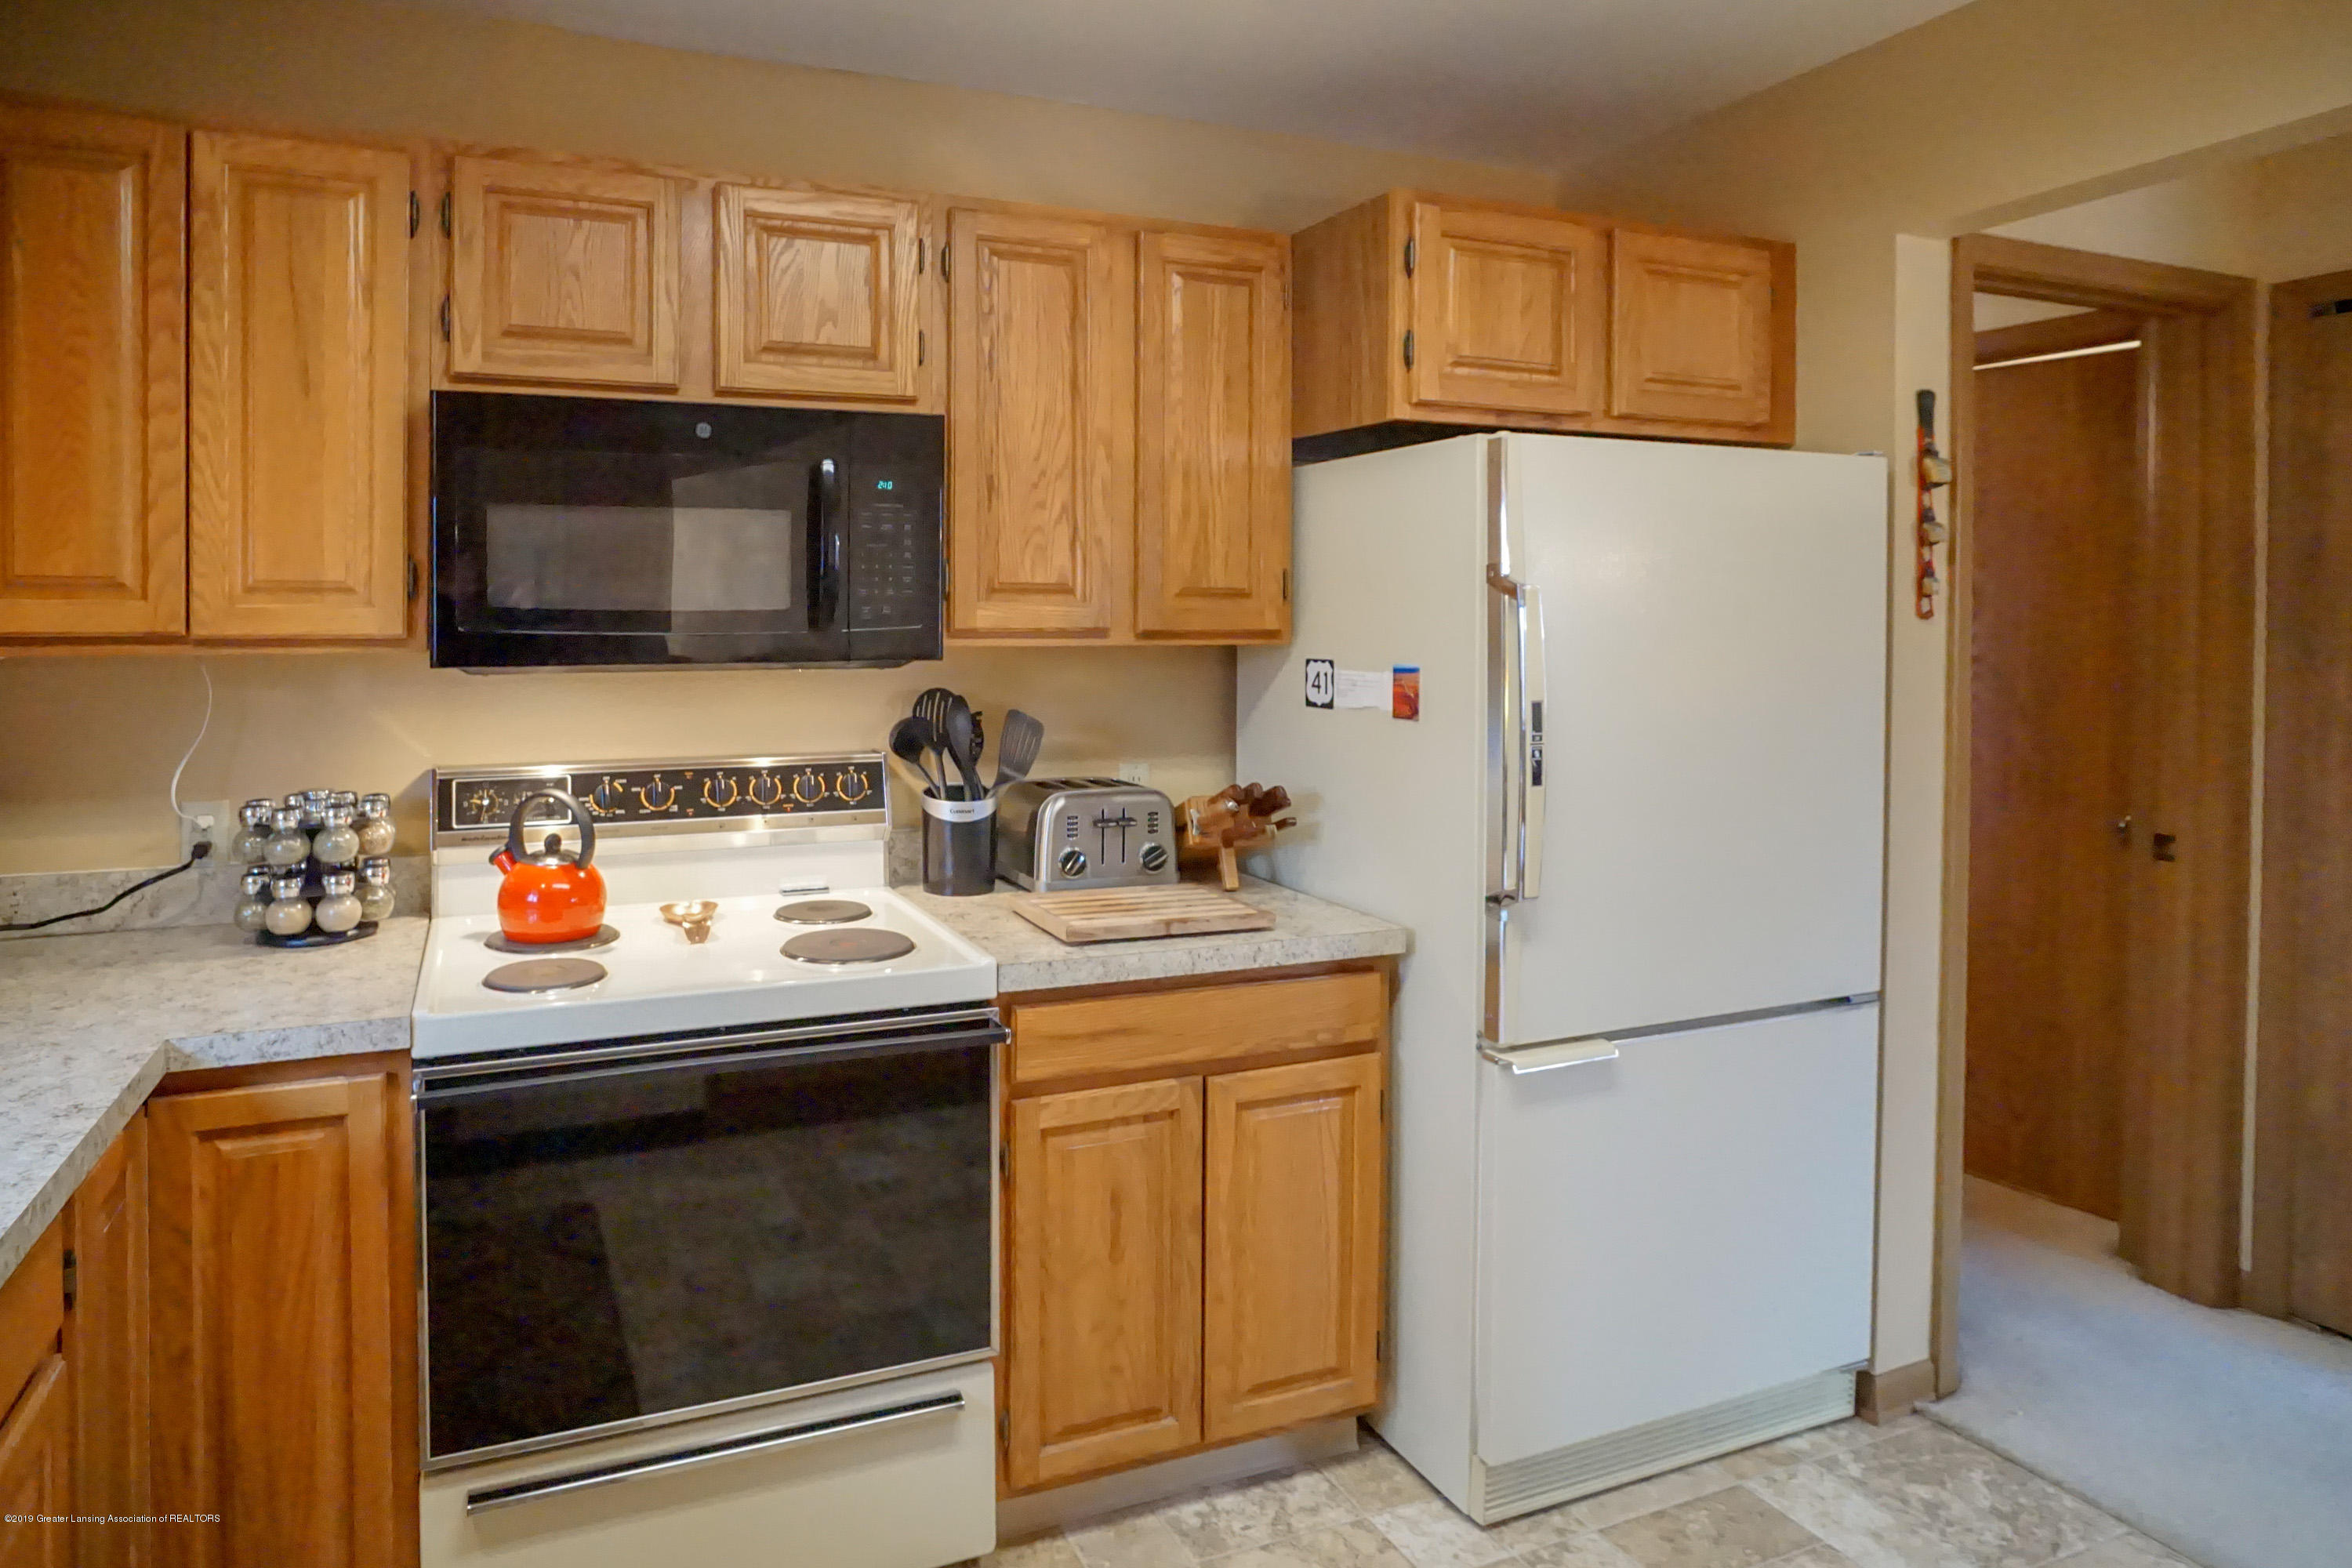 5041 W Willoughby Rd APT 1 - 5140WilloughbyRdMLS-17 - 14